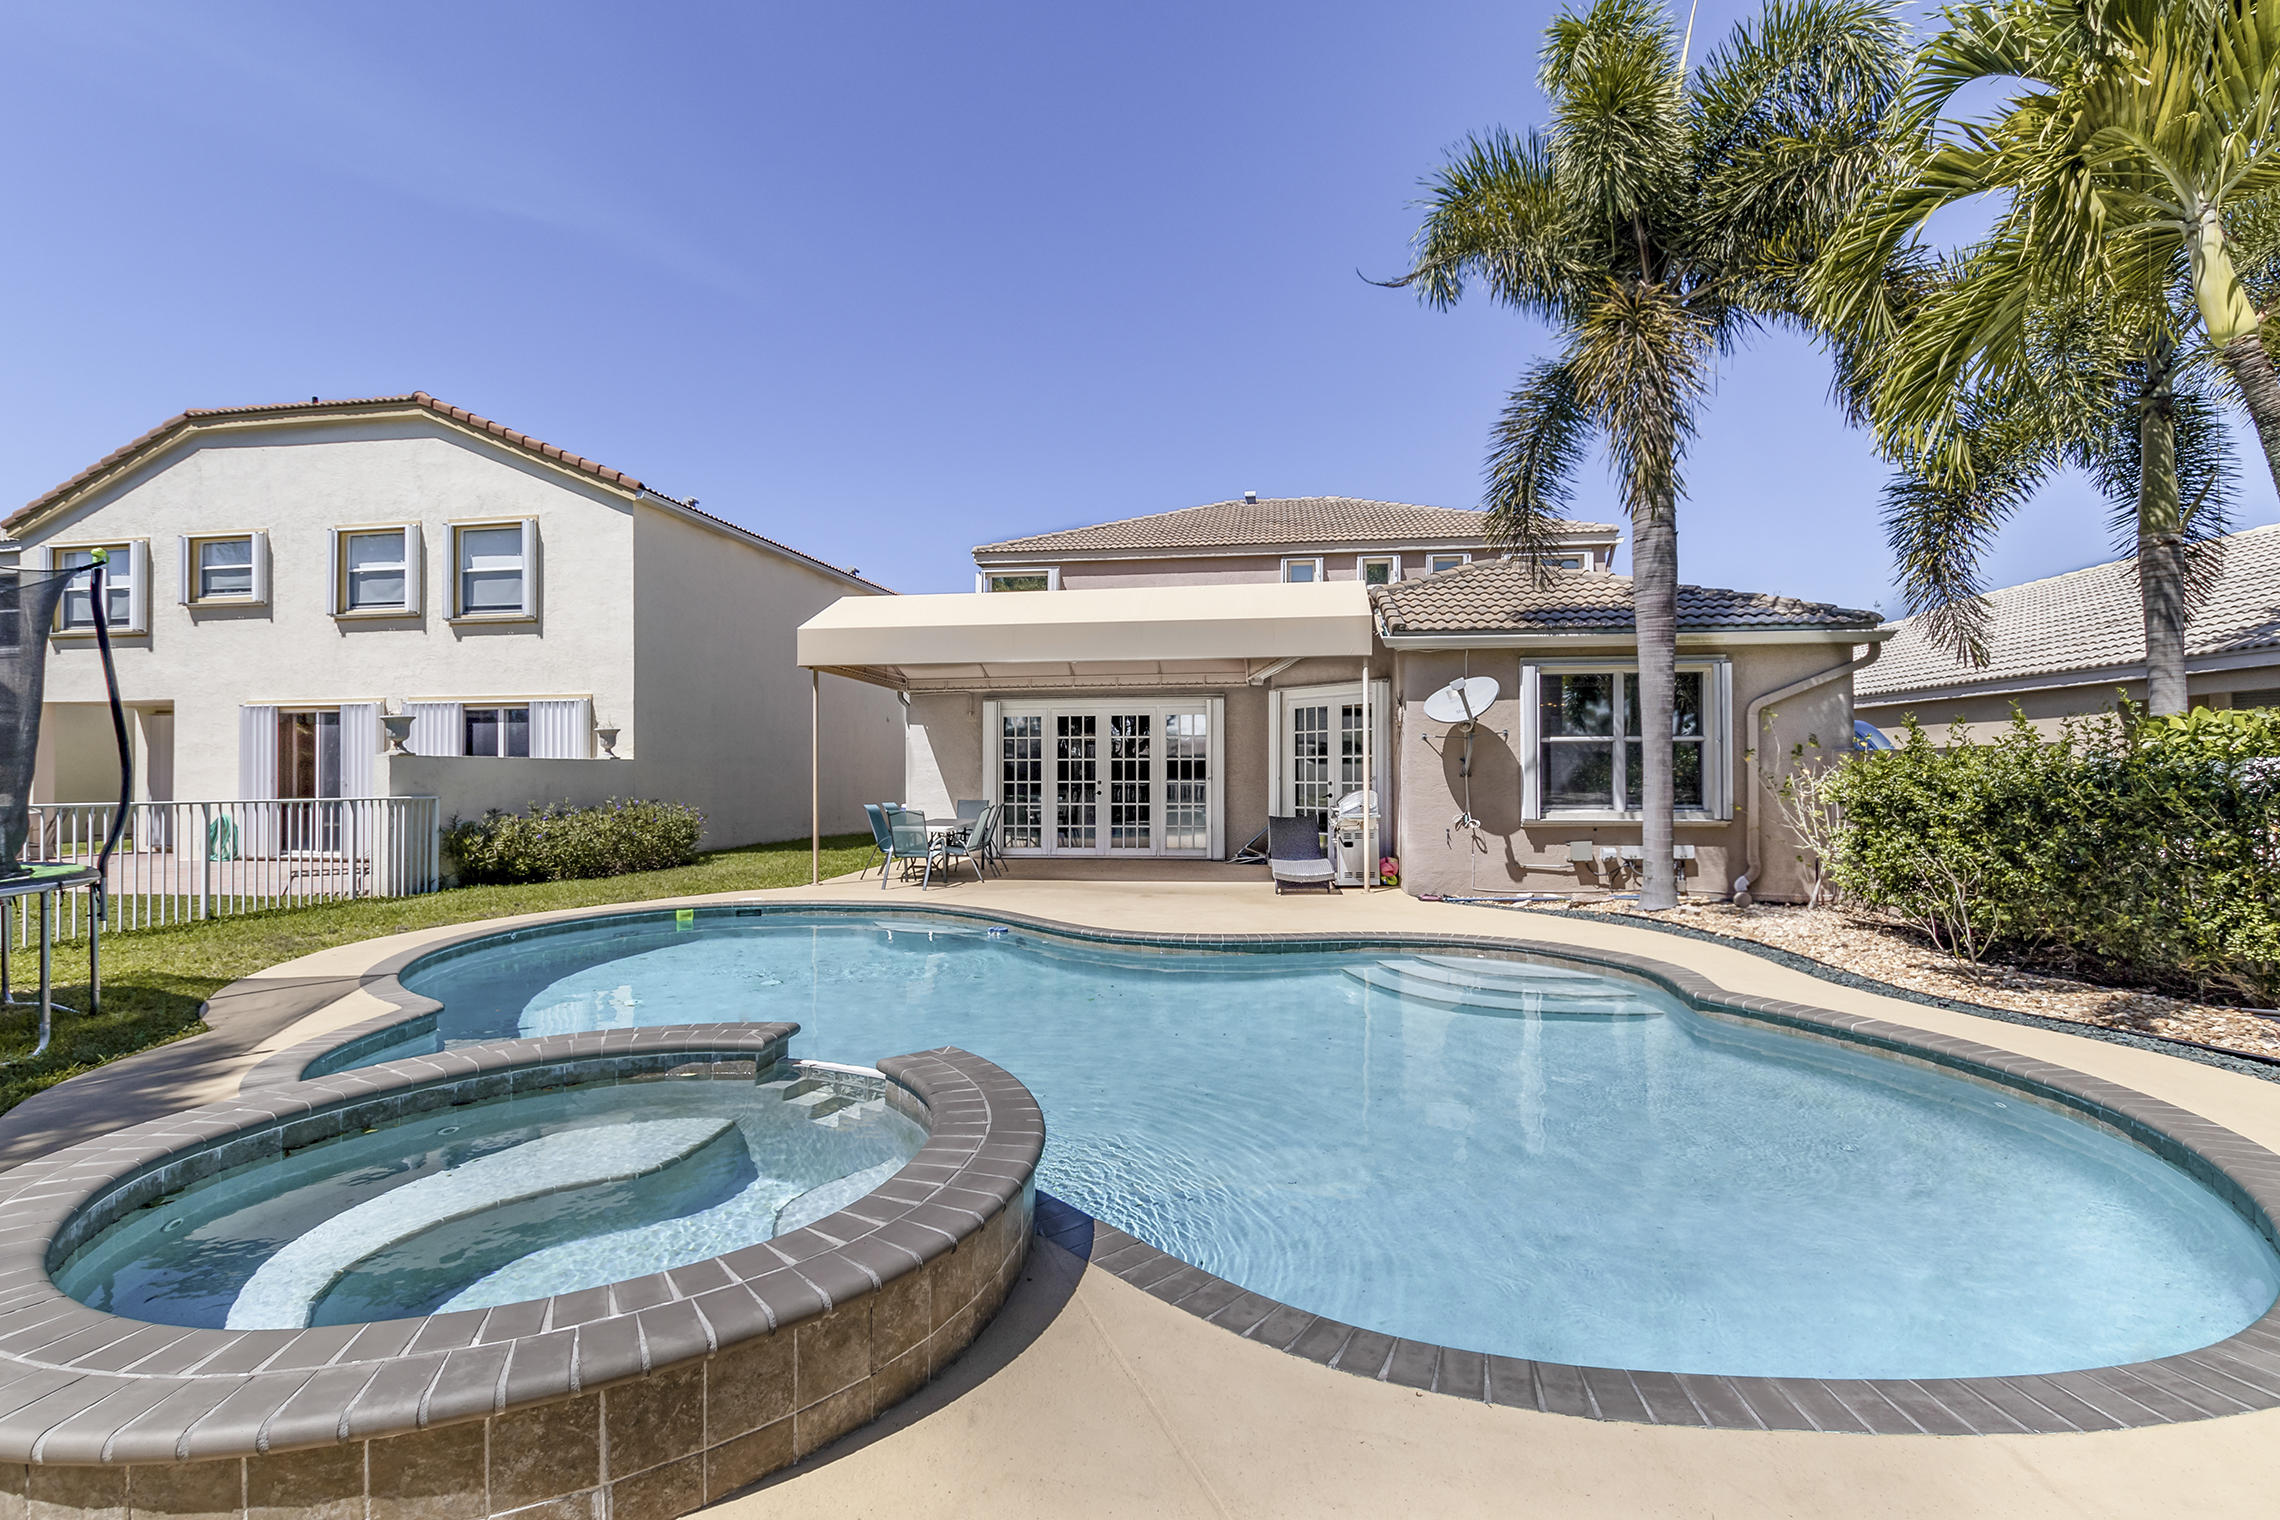 Home for sale in Smith Farm / Kingsmill Village Lake Worth Florida